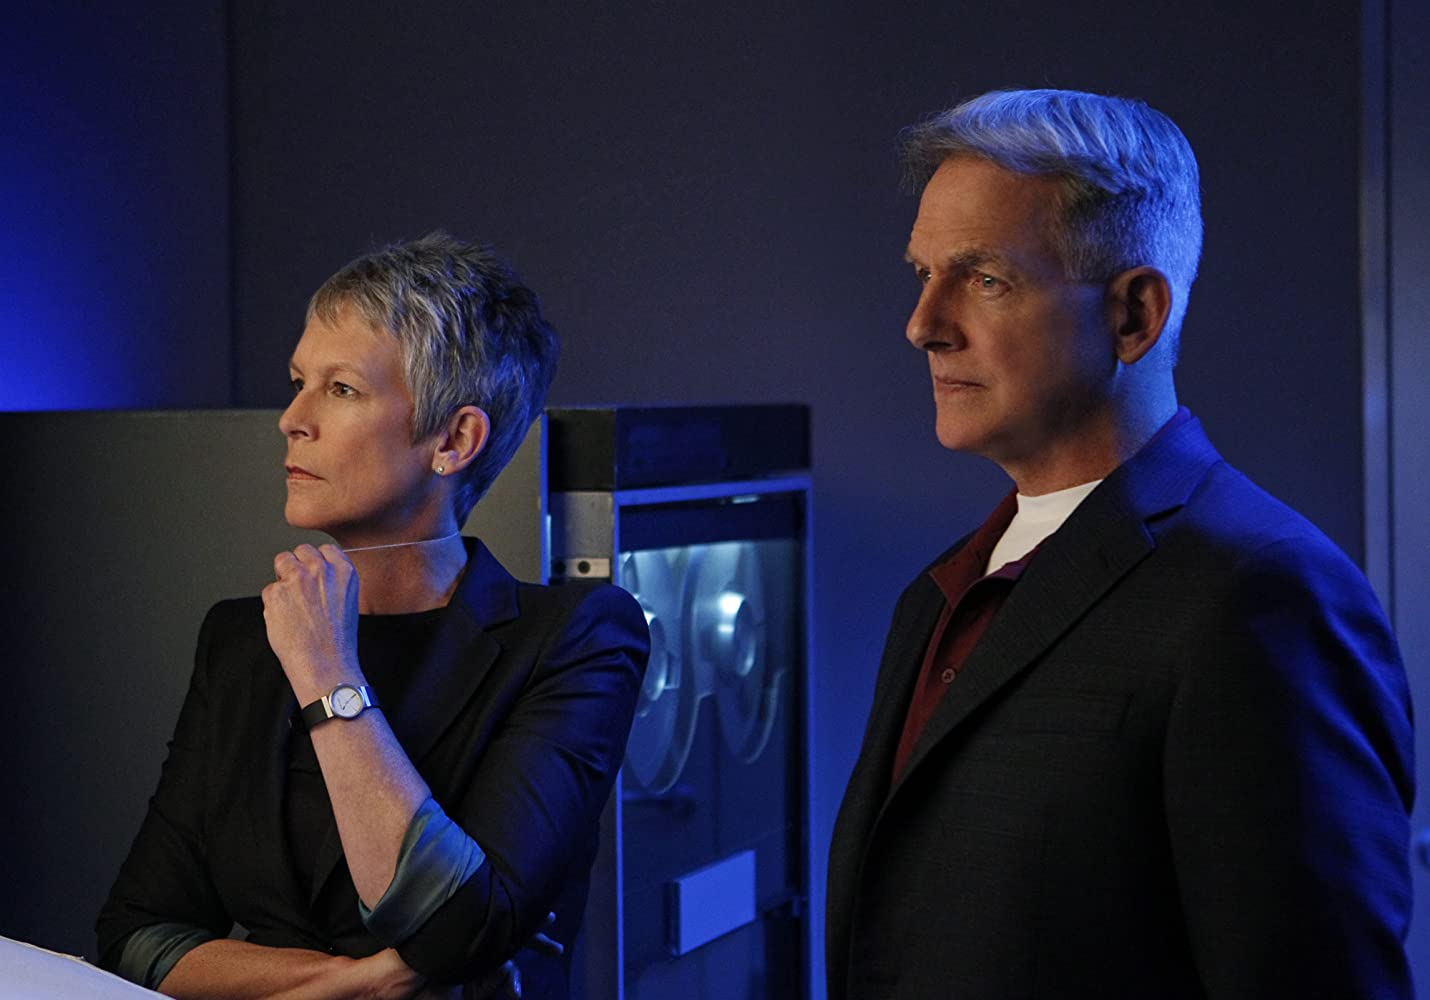 Jamie Lee Curtis and Mark Harmon in NCIS: Naval Criminal Investigative Service (2003)